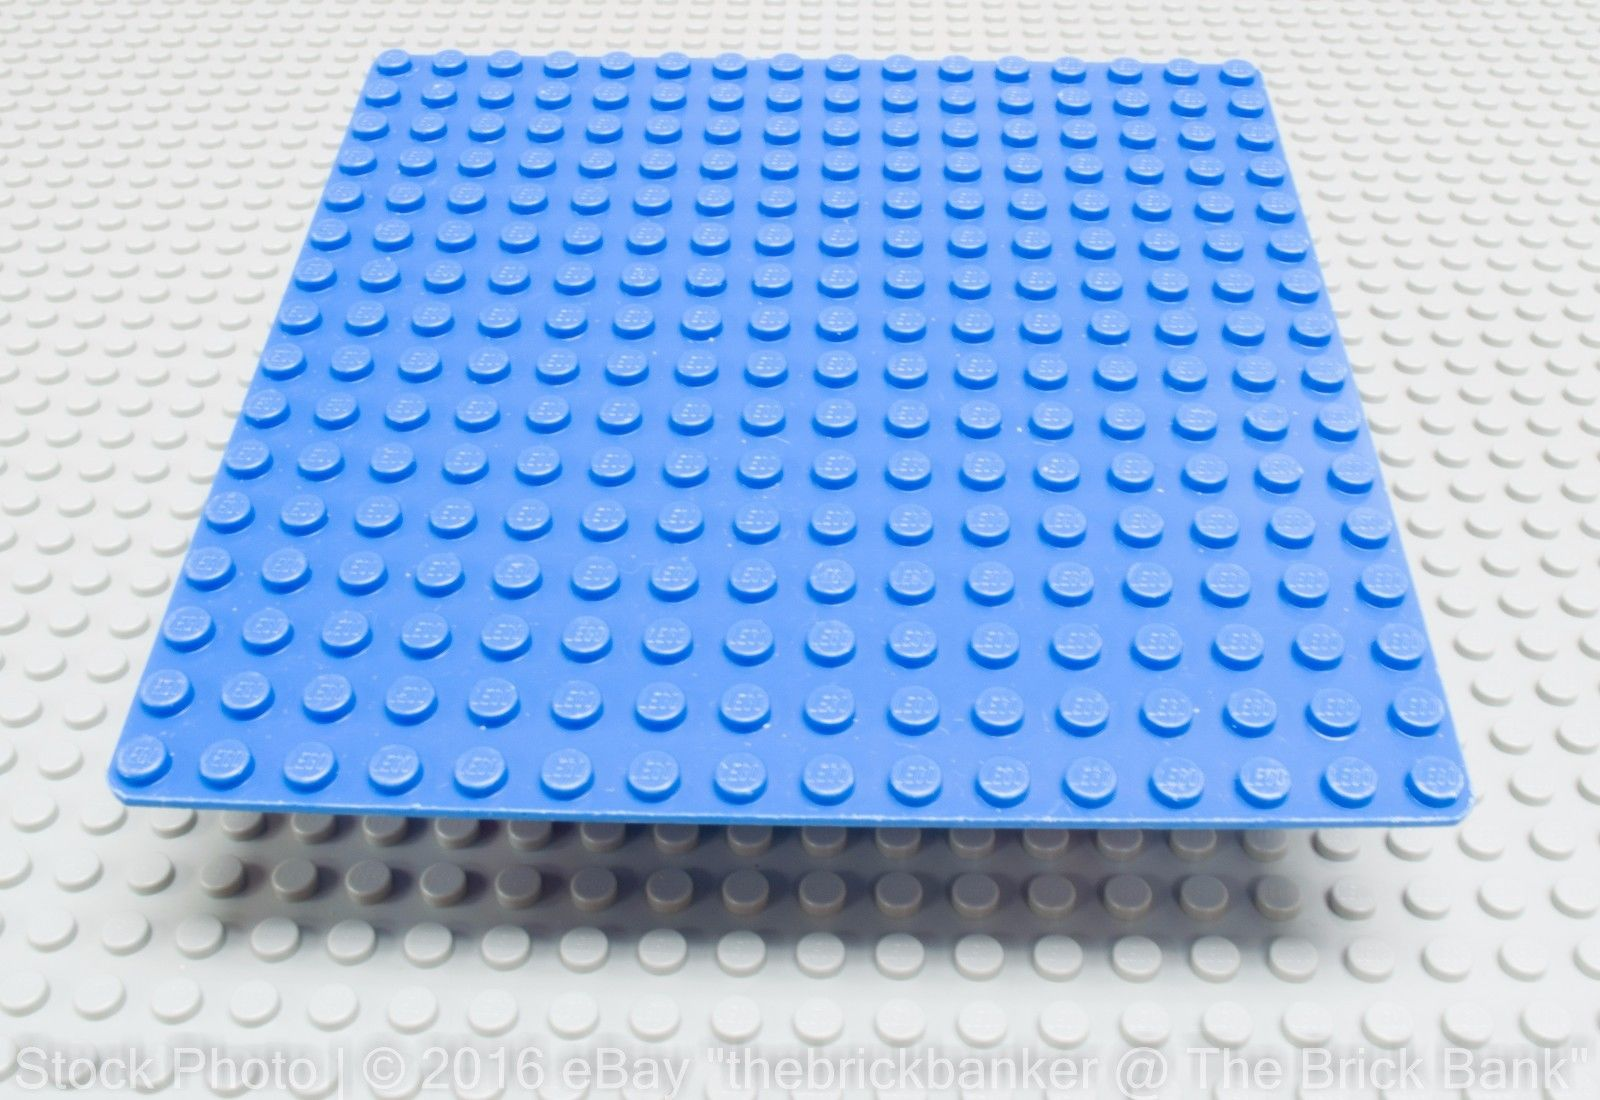 LEGO Tan 16x16 Flat Building Plate Piece 5 inches x 5 inches